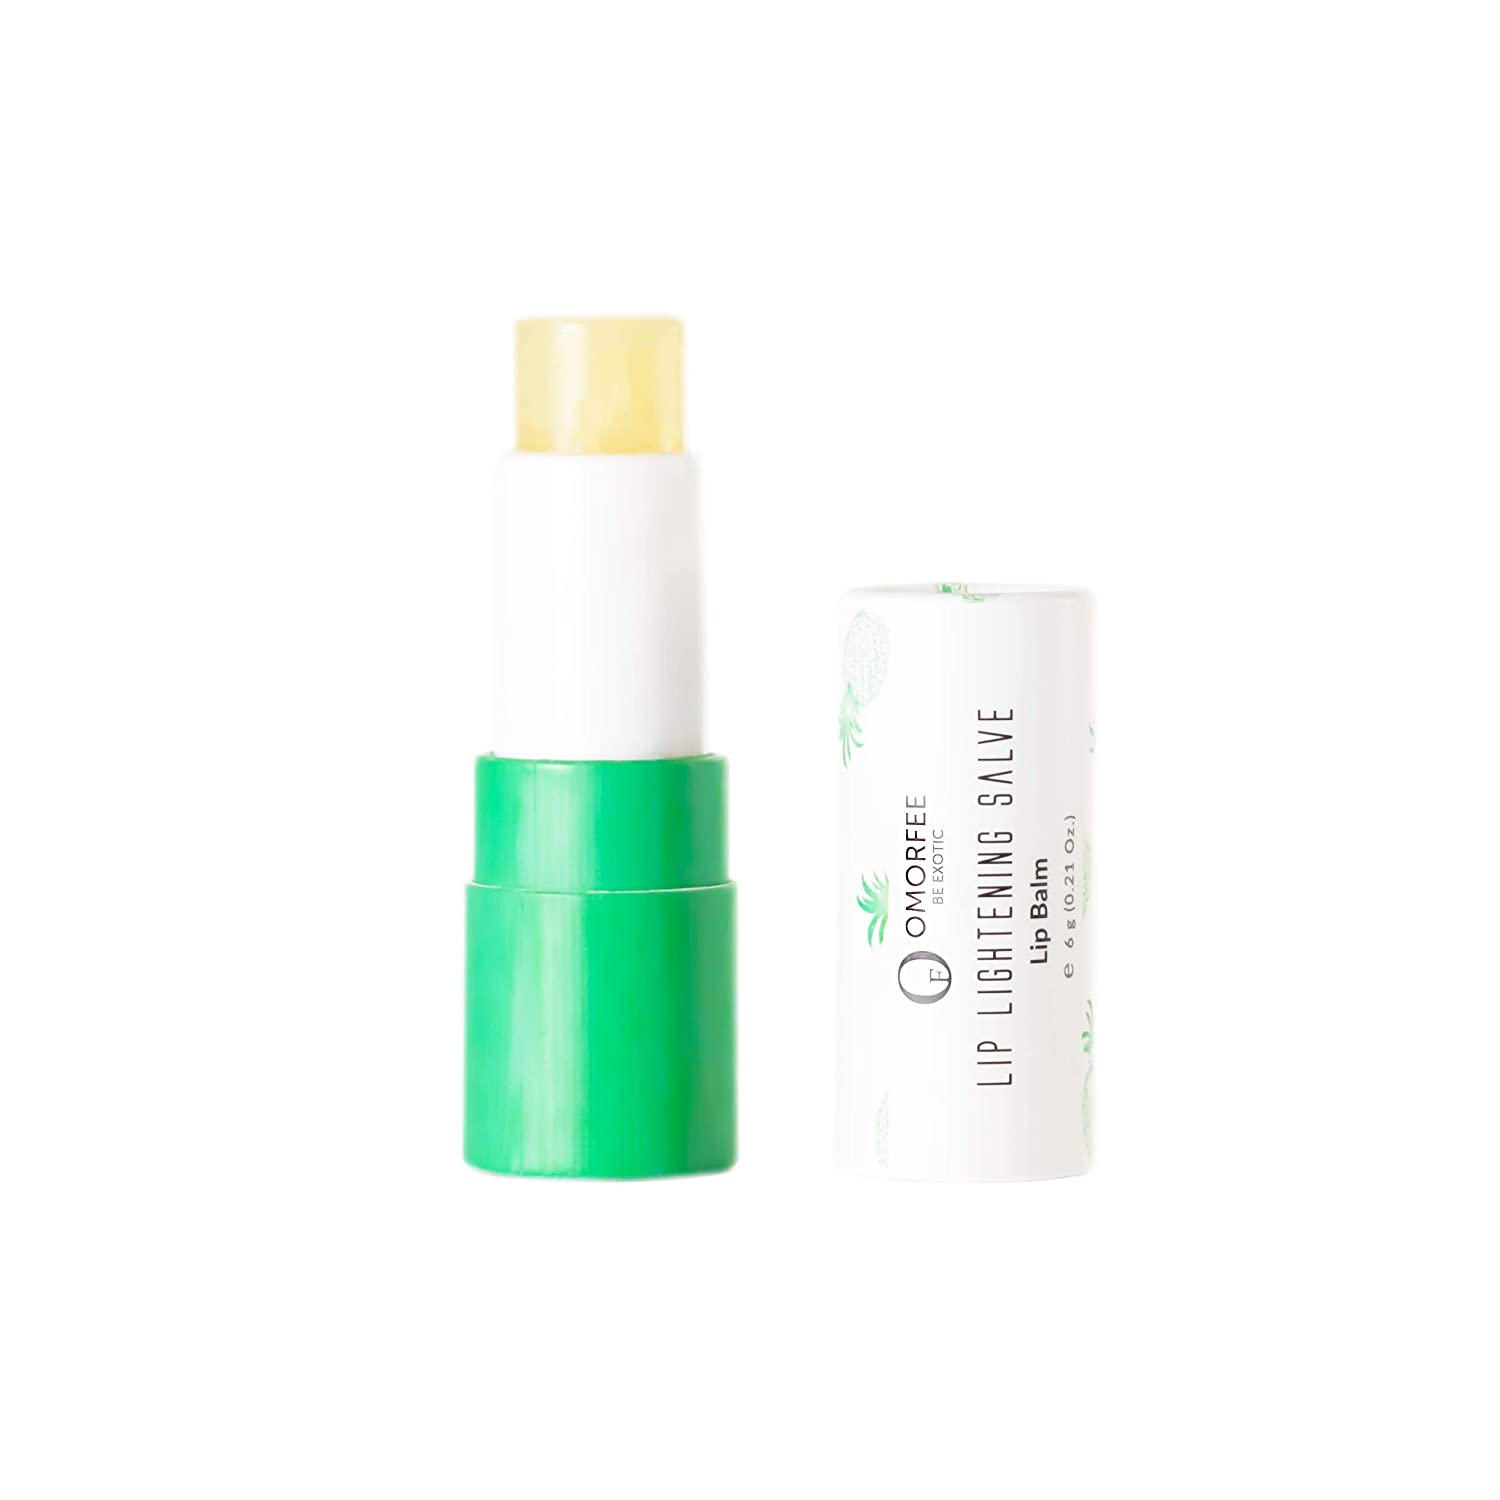 Omorfee 100% Organic Lip Lightening Stick for Dark Lips, Lip Whitening Lipstick with SPF, Natural Lip Balm Protection & Repair, Cocoa Butter, Carrot Seed Oil & Pineapple Extract - 6 Grams/0.21 Oz